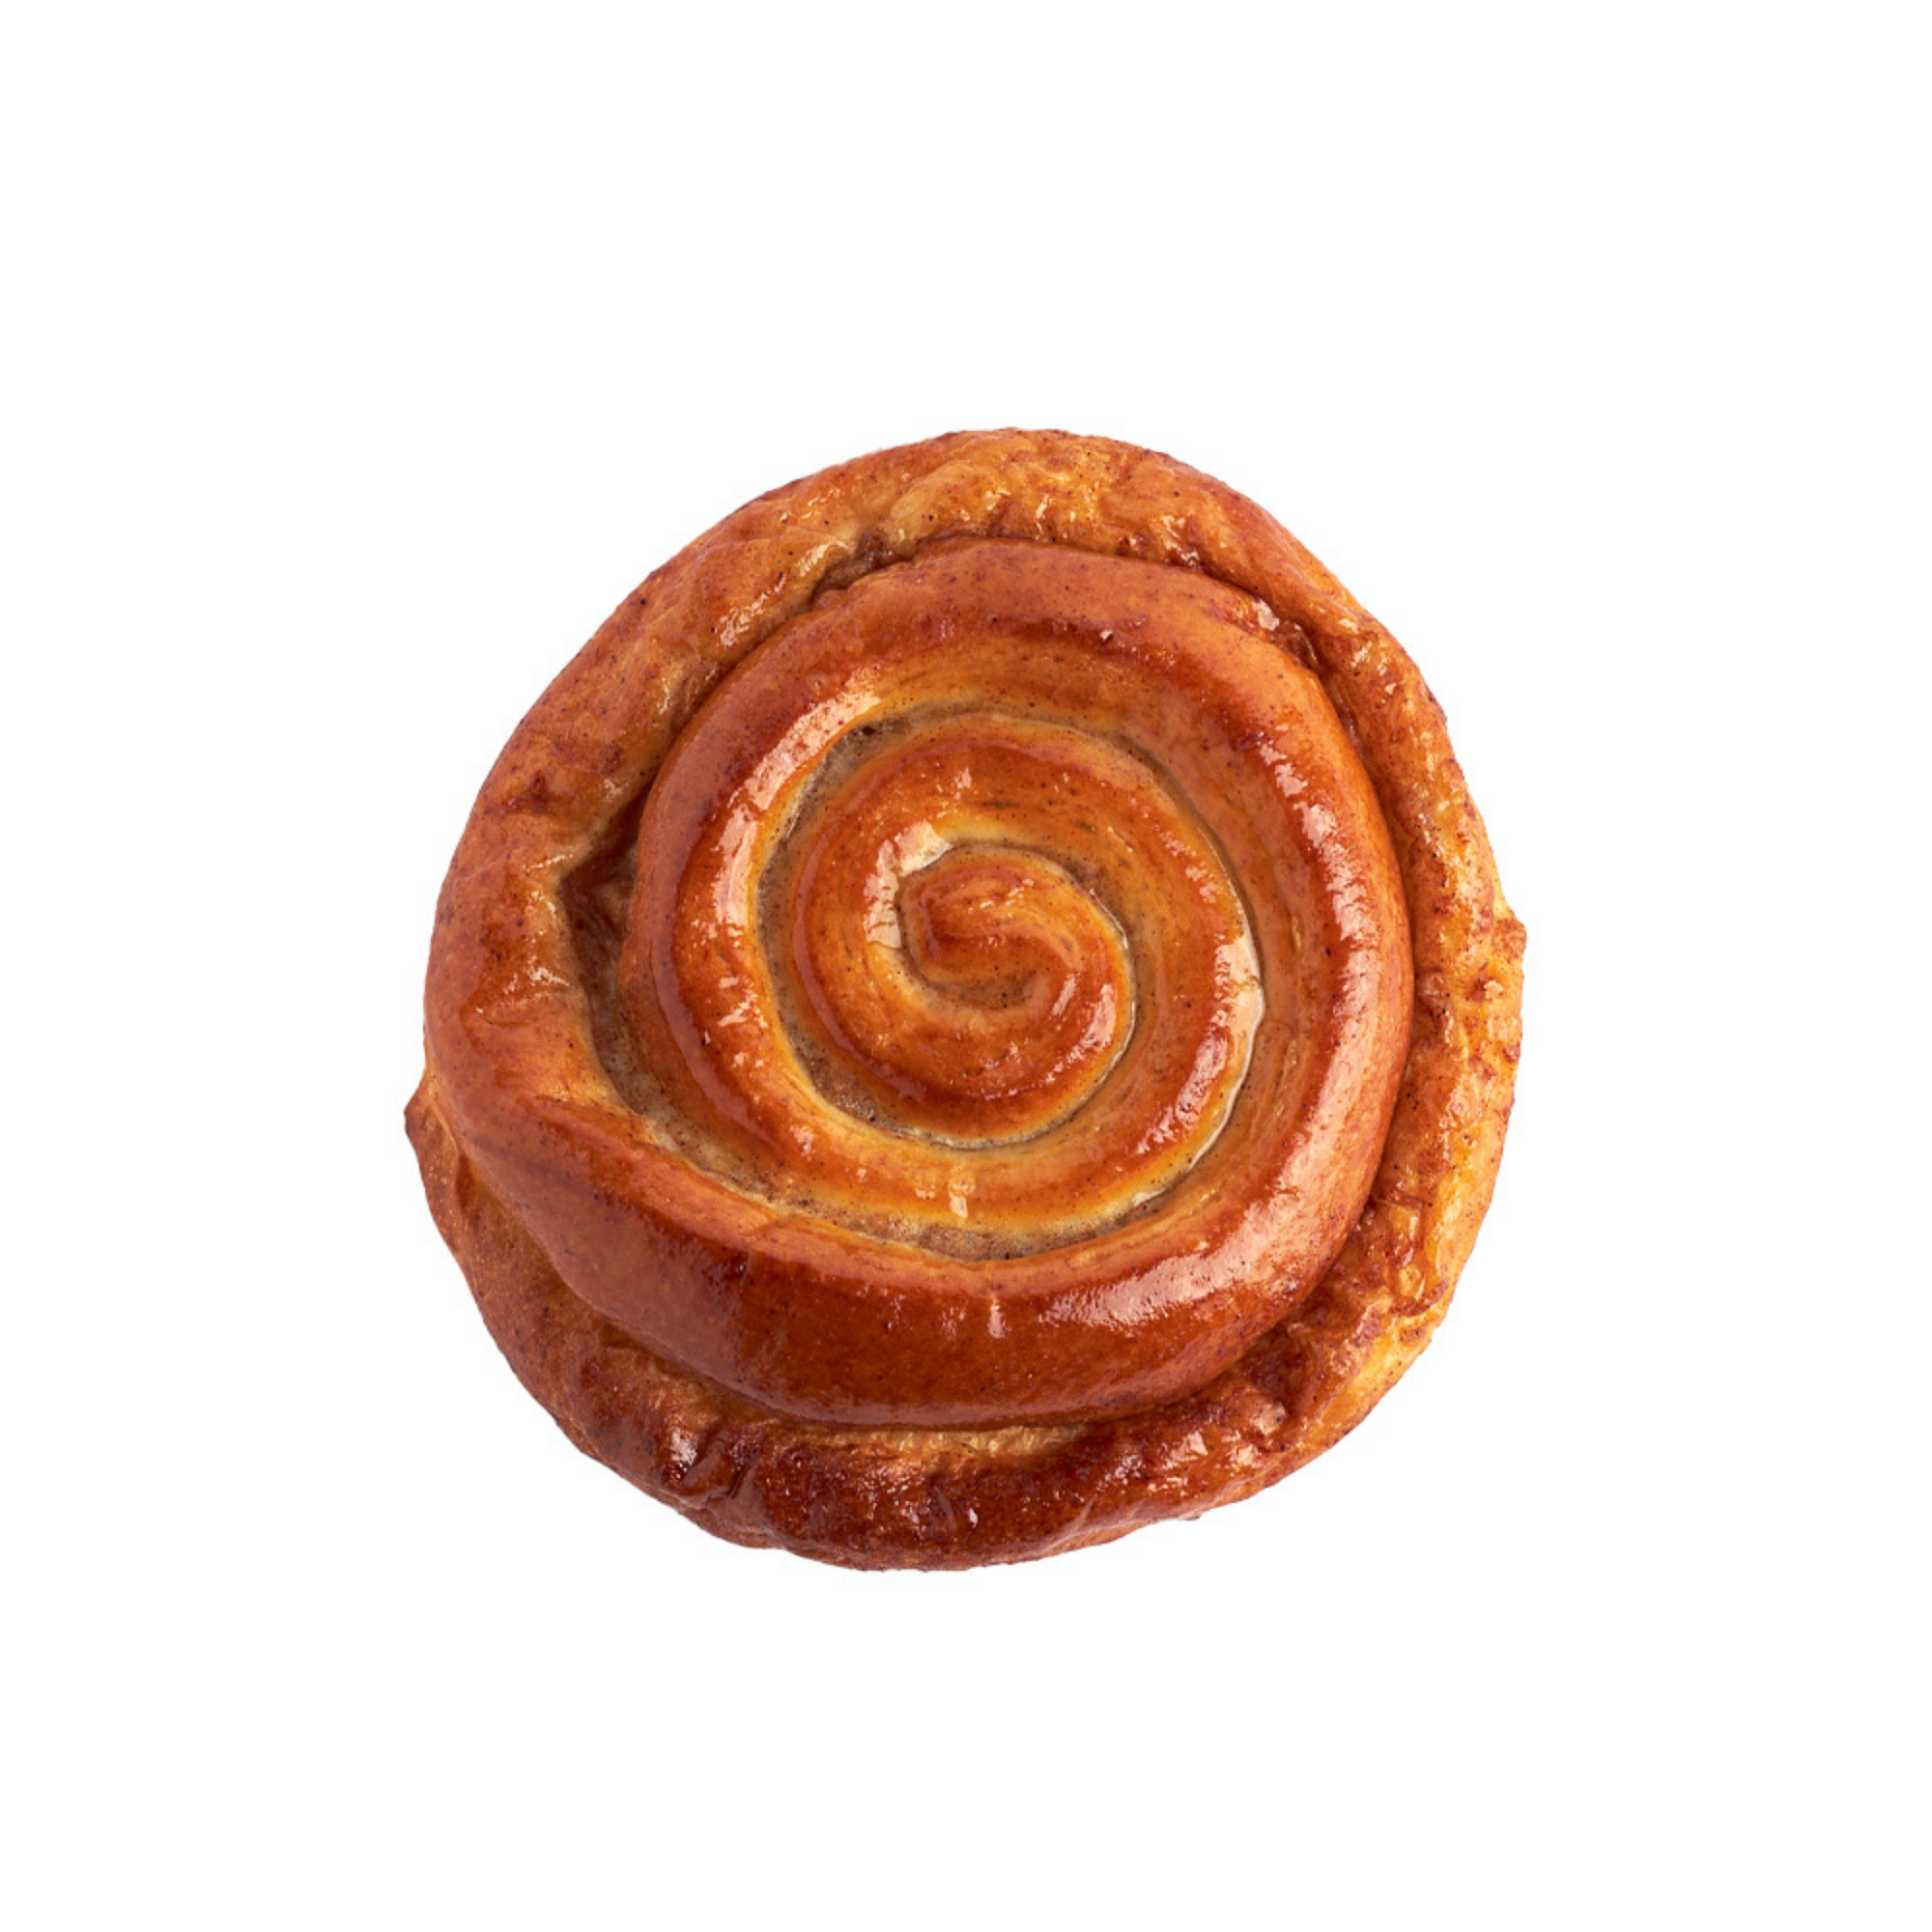 Small box - Danish Cinnamon Roll - 40g x 30